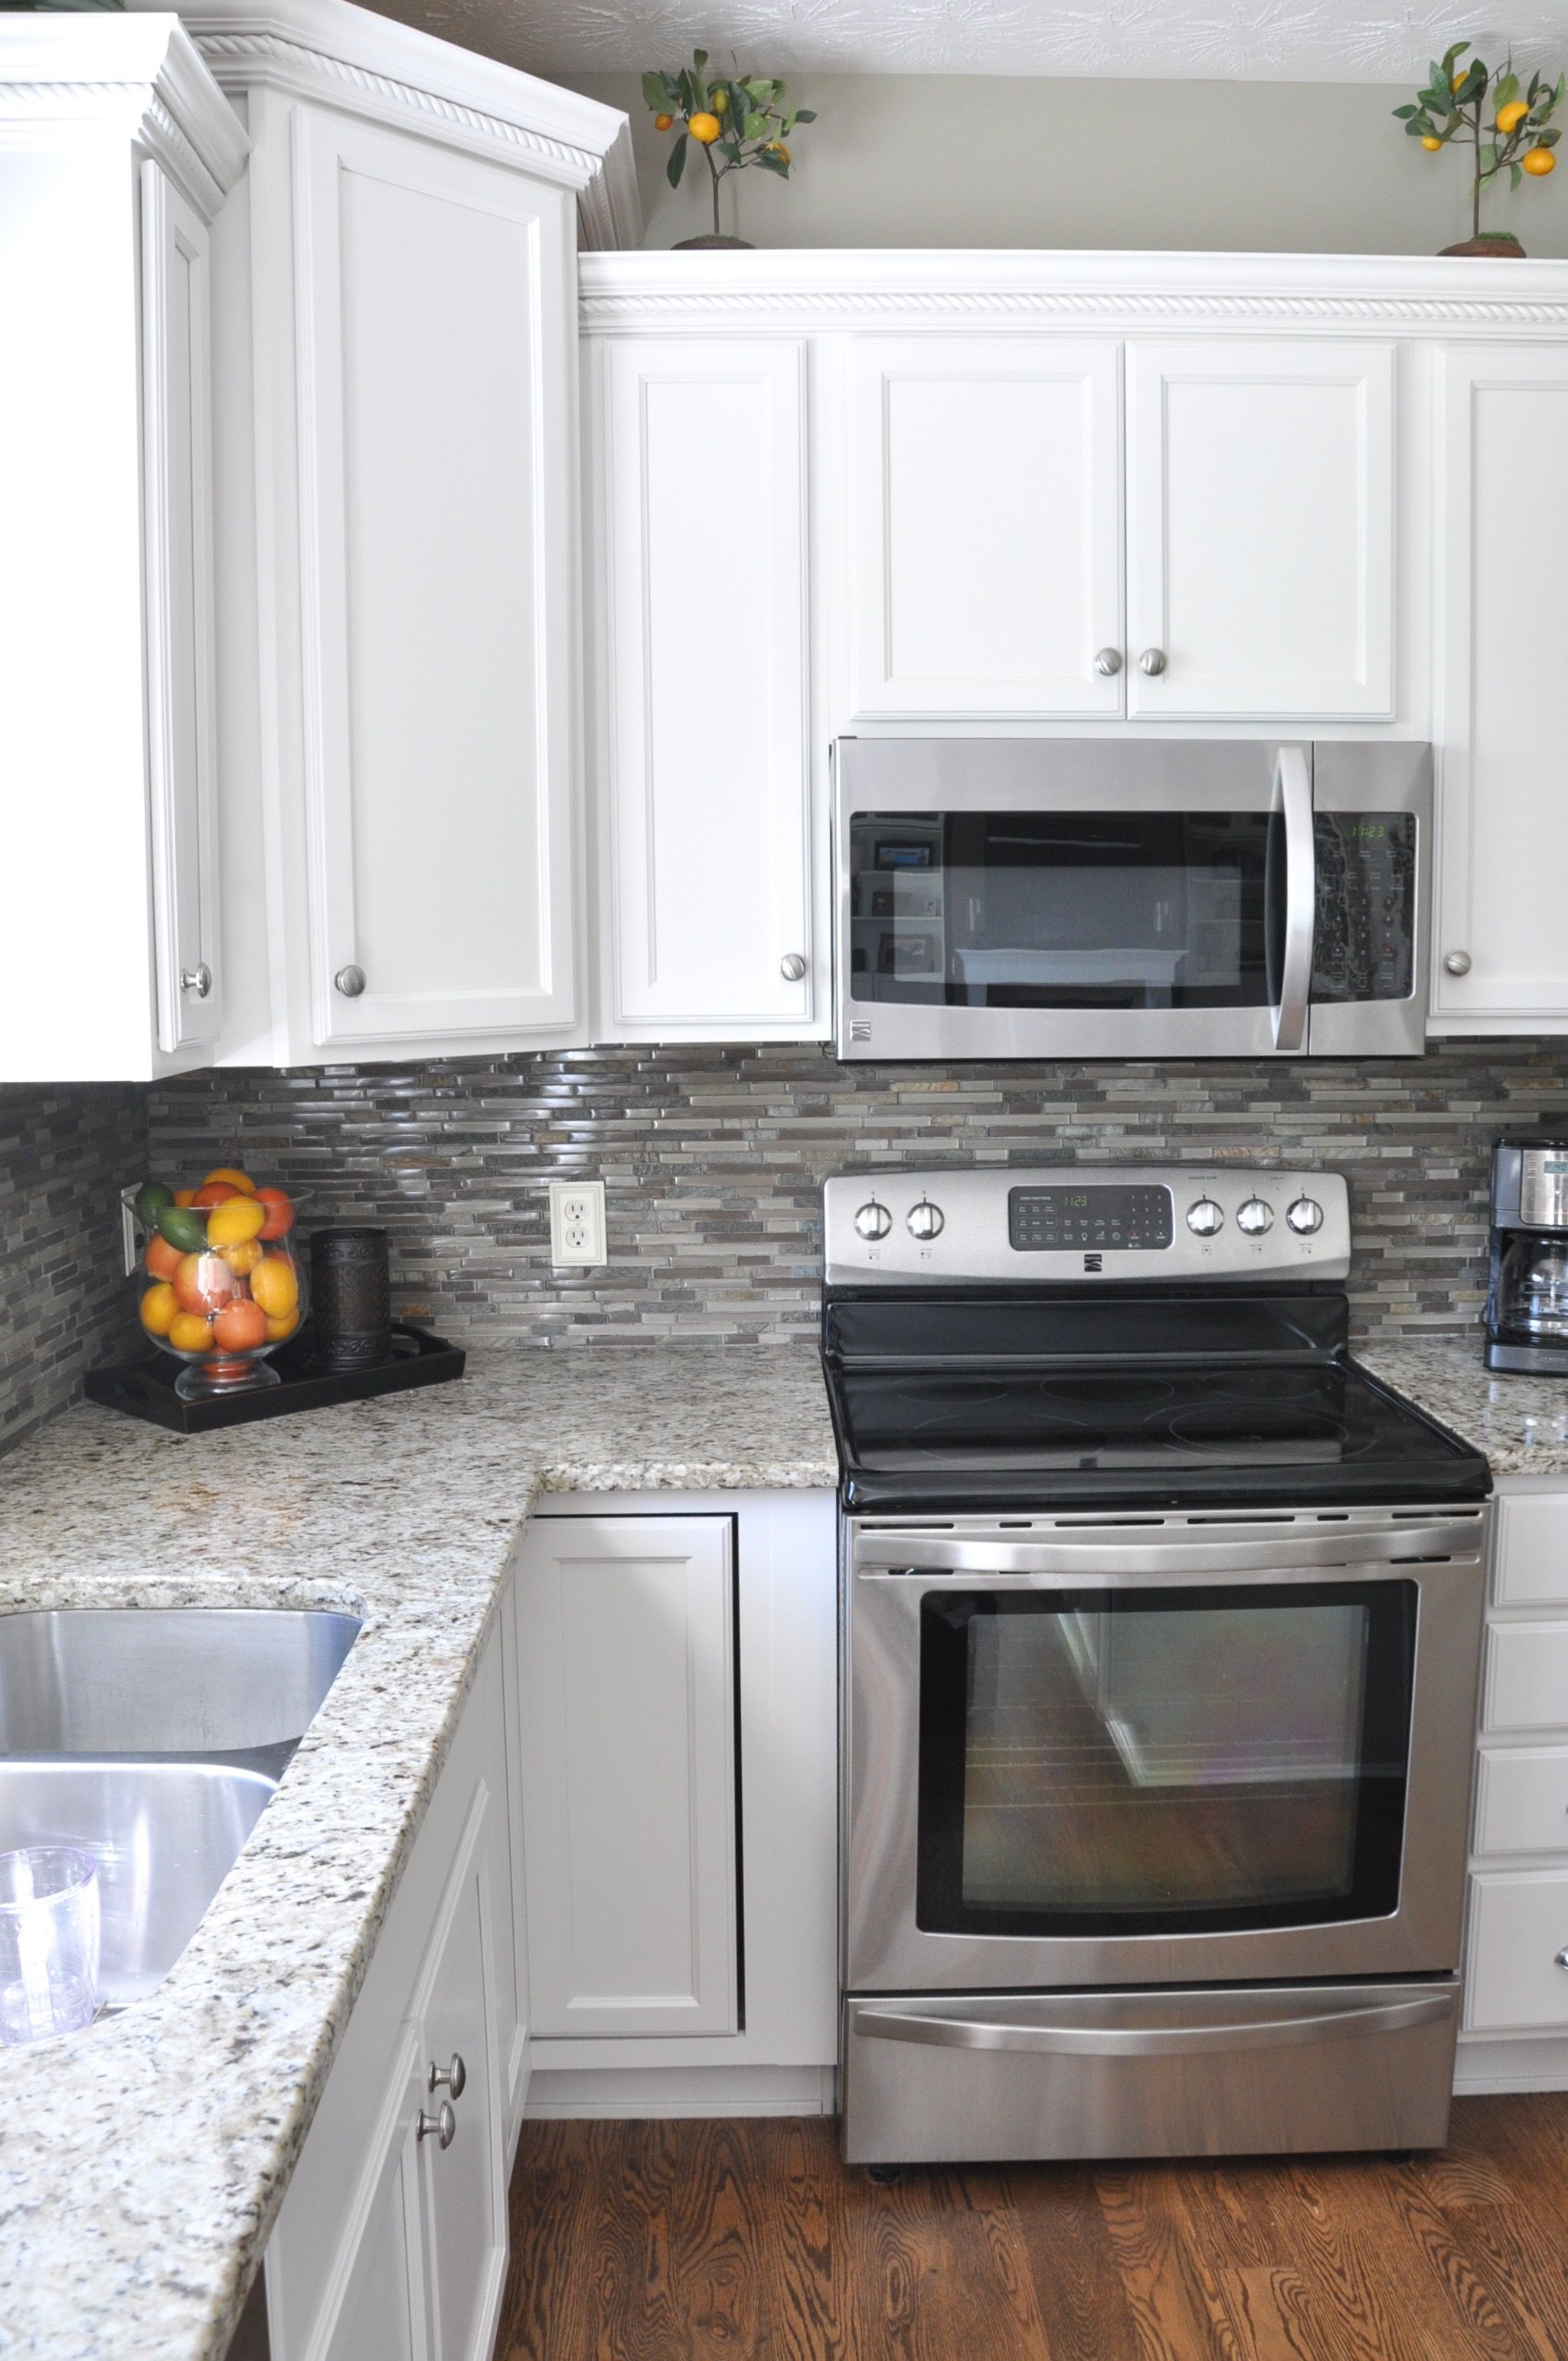 Beau A Maple Kitchen Facelift Project   With Refinished Floors And Refreshed  Cabinets!